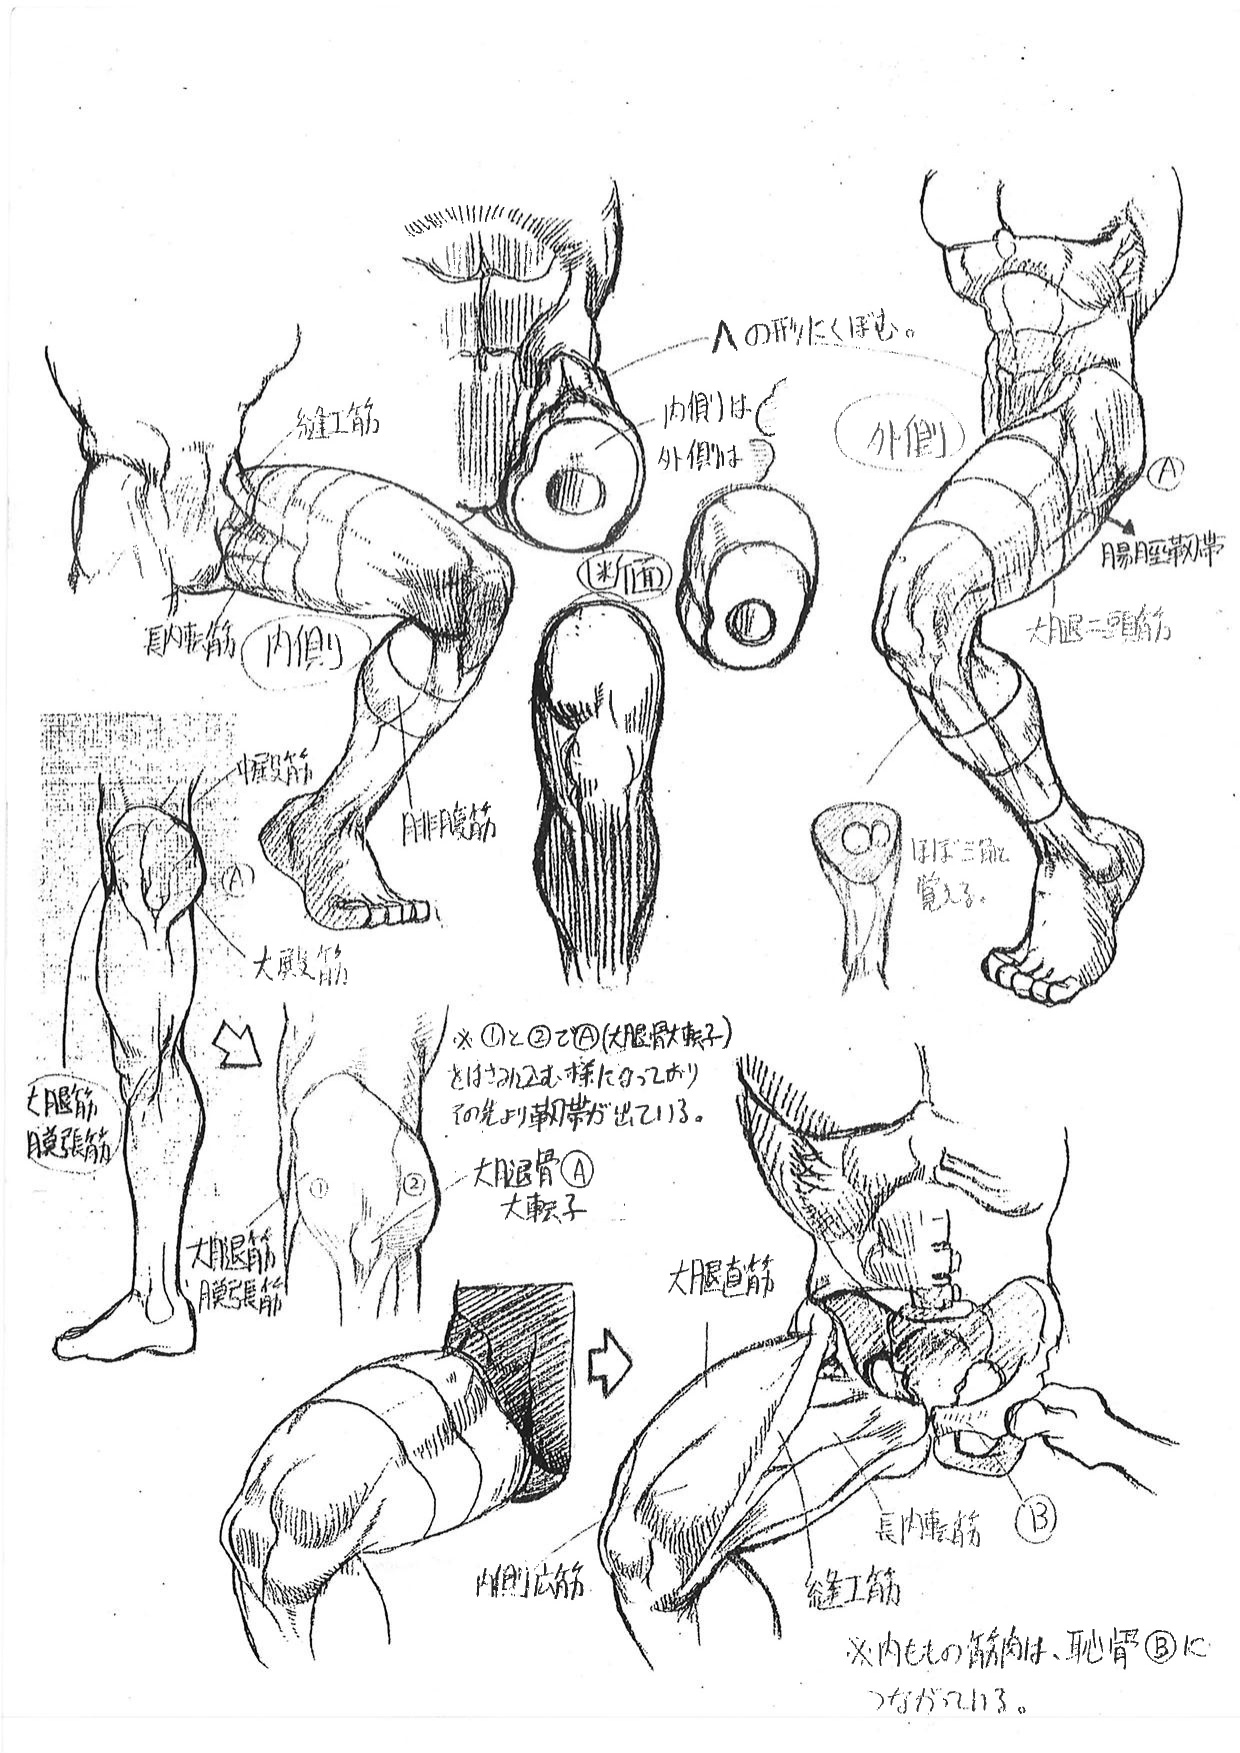 Capcom's Street Fighter Anatomy Guide